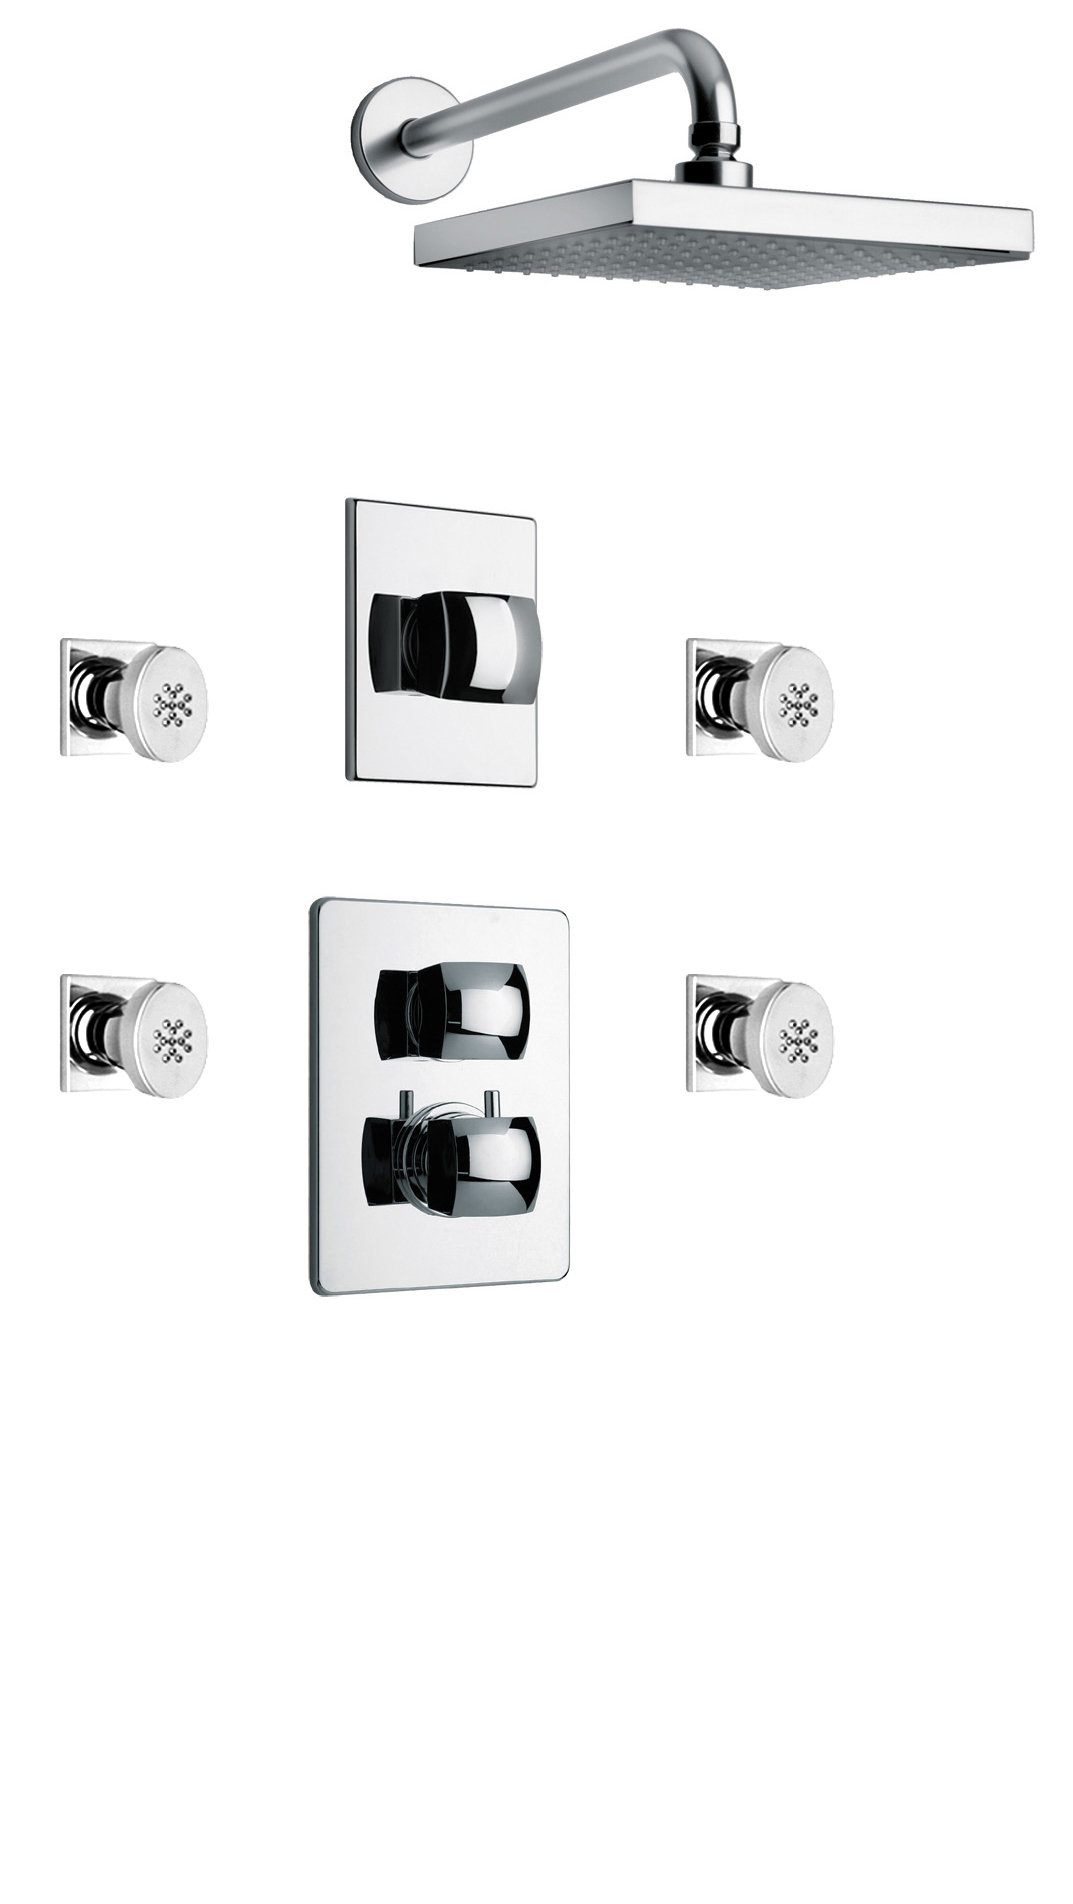 "Thermostatic Shower With 3/4"" Ceramic Disc Volume Control, 3-Way Diverter and 4 Body Jets in Chrome"